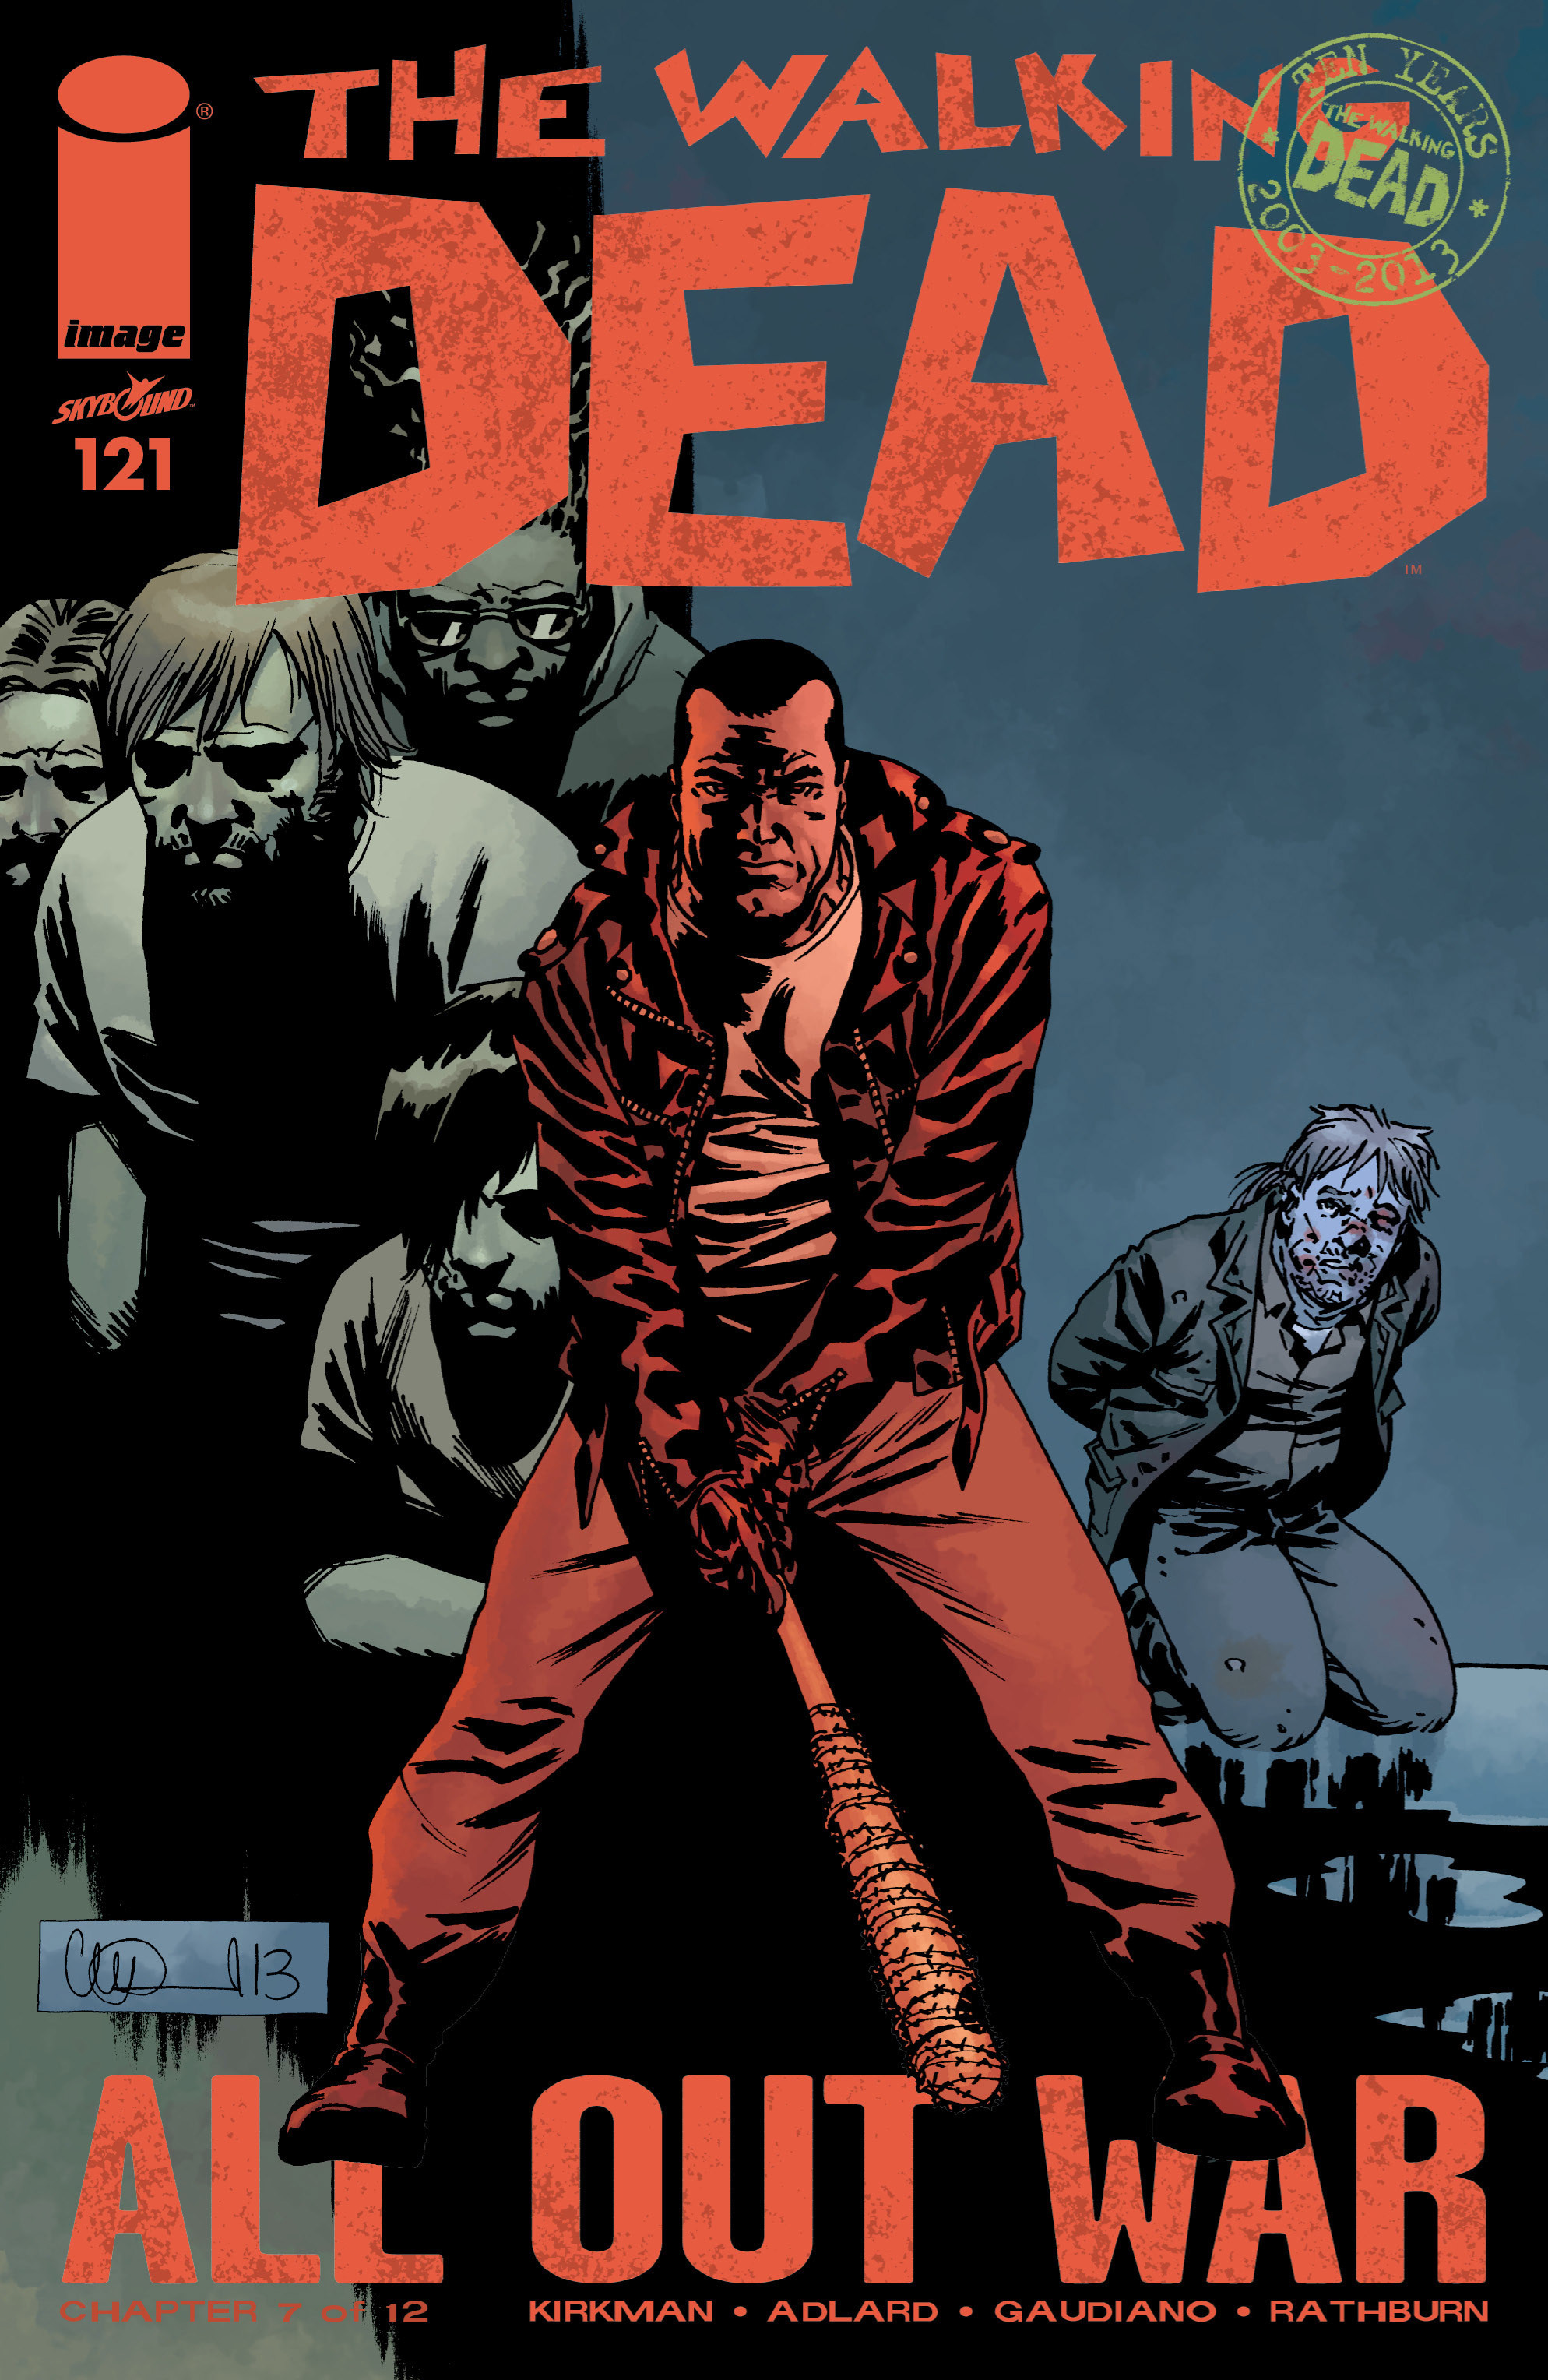 The Walking Dead 121 Page 1